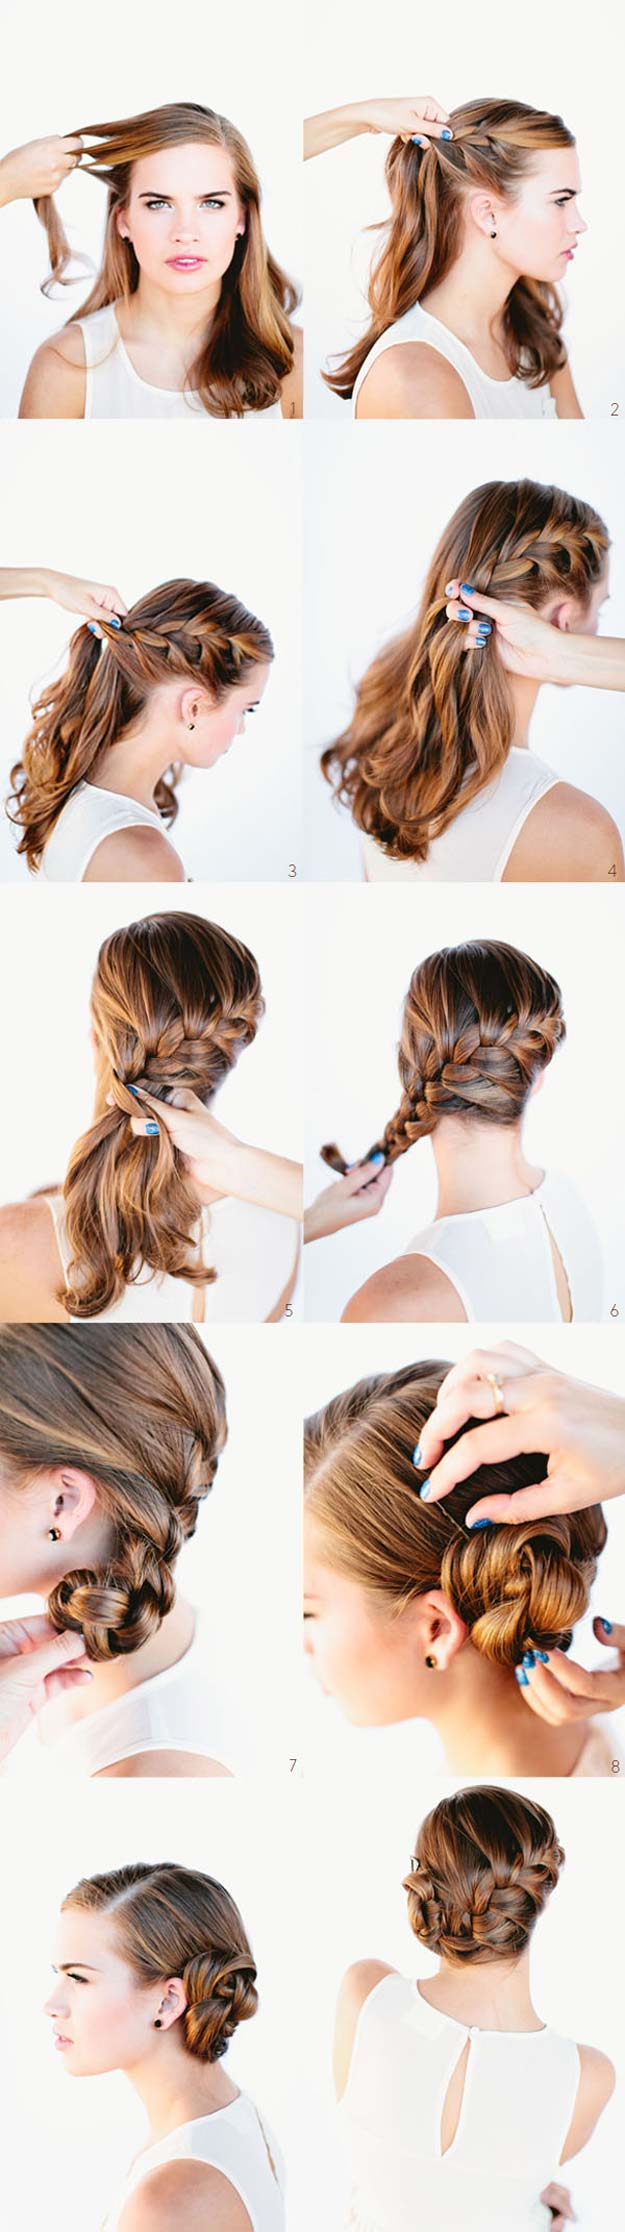 Marvelous 40 Of The Best Cute Hair Braiding Tutorials Diy Projects For Teens Short Hairstyles For Black Women Fulllsitofus